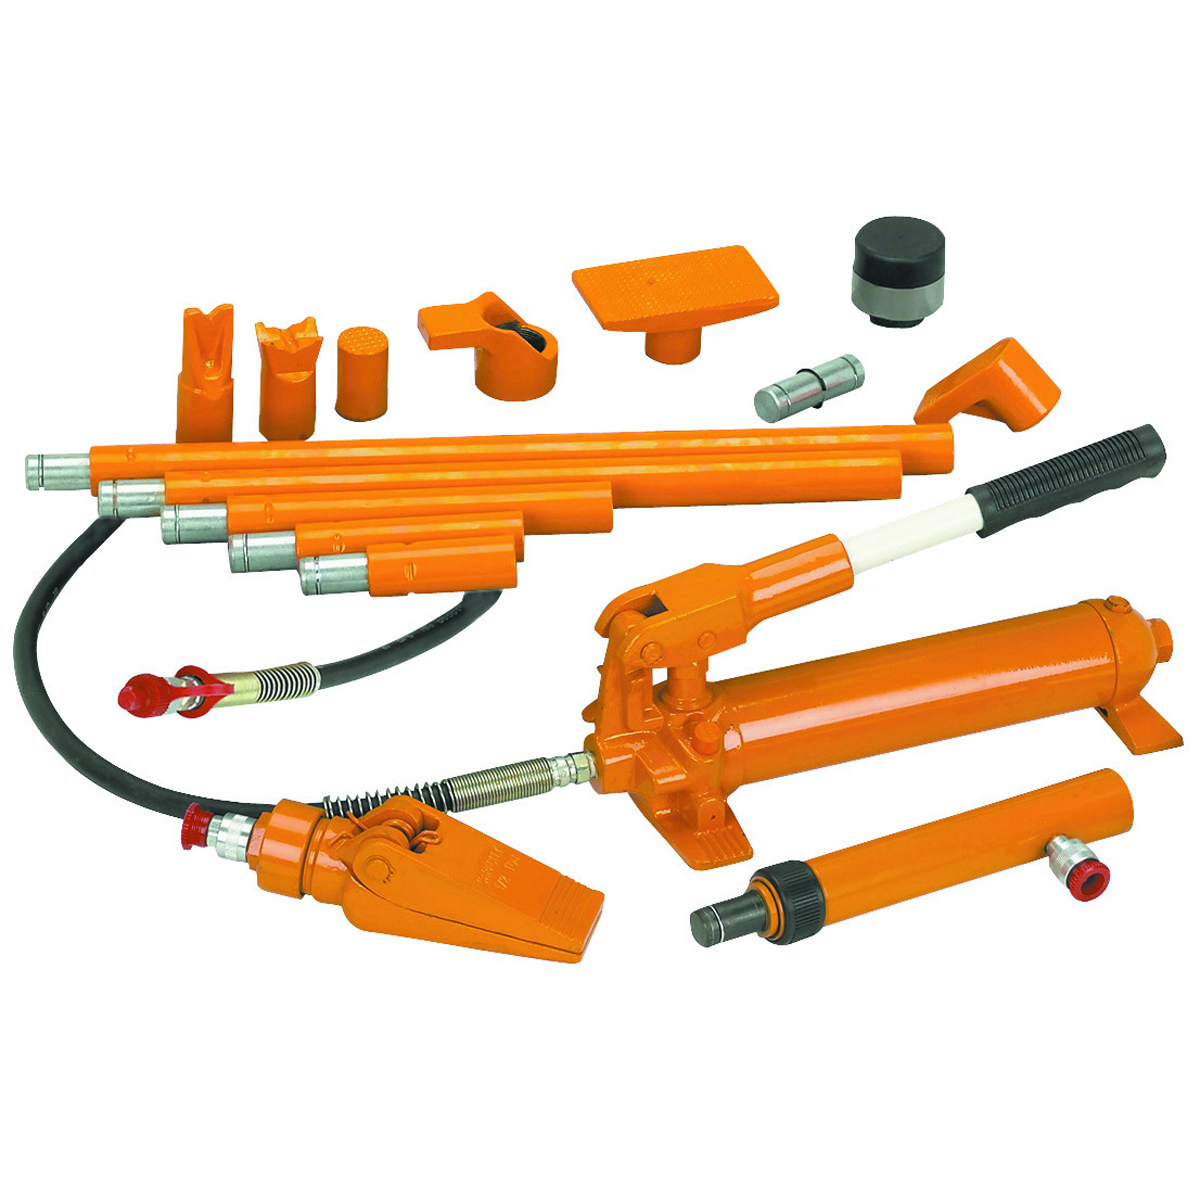 Image Of Meter 96308 Tool Central : Portable hydraulic body puller kit